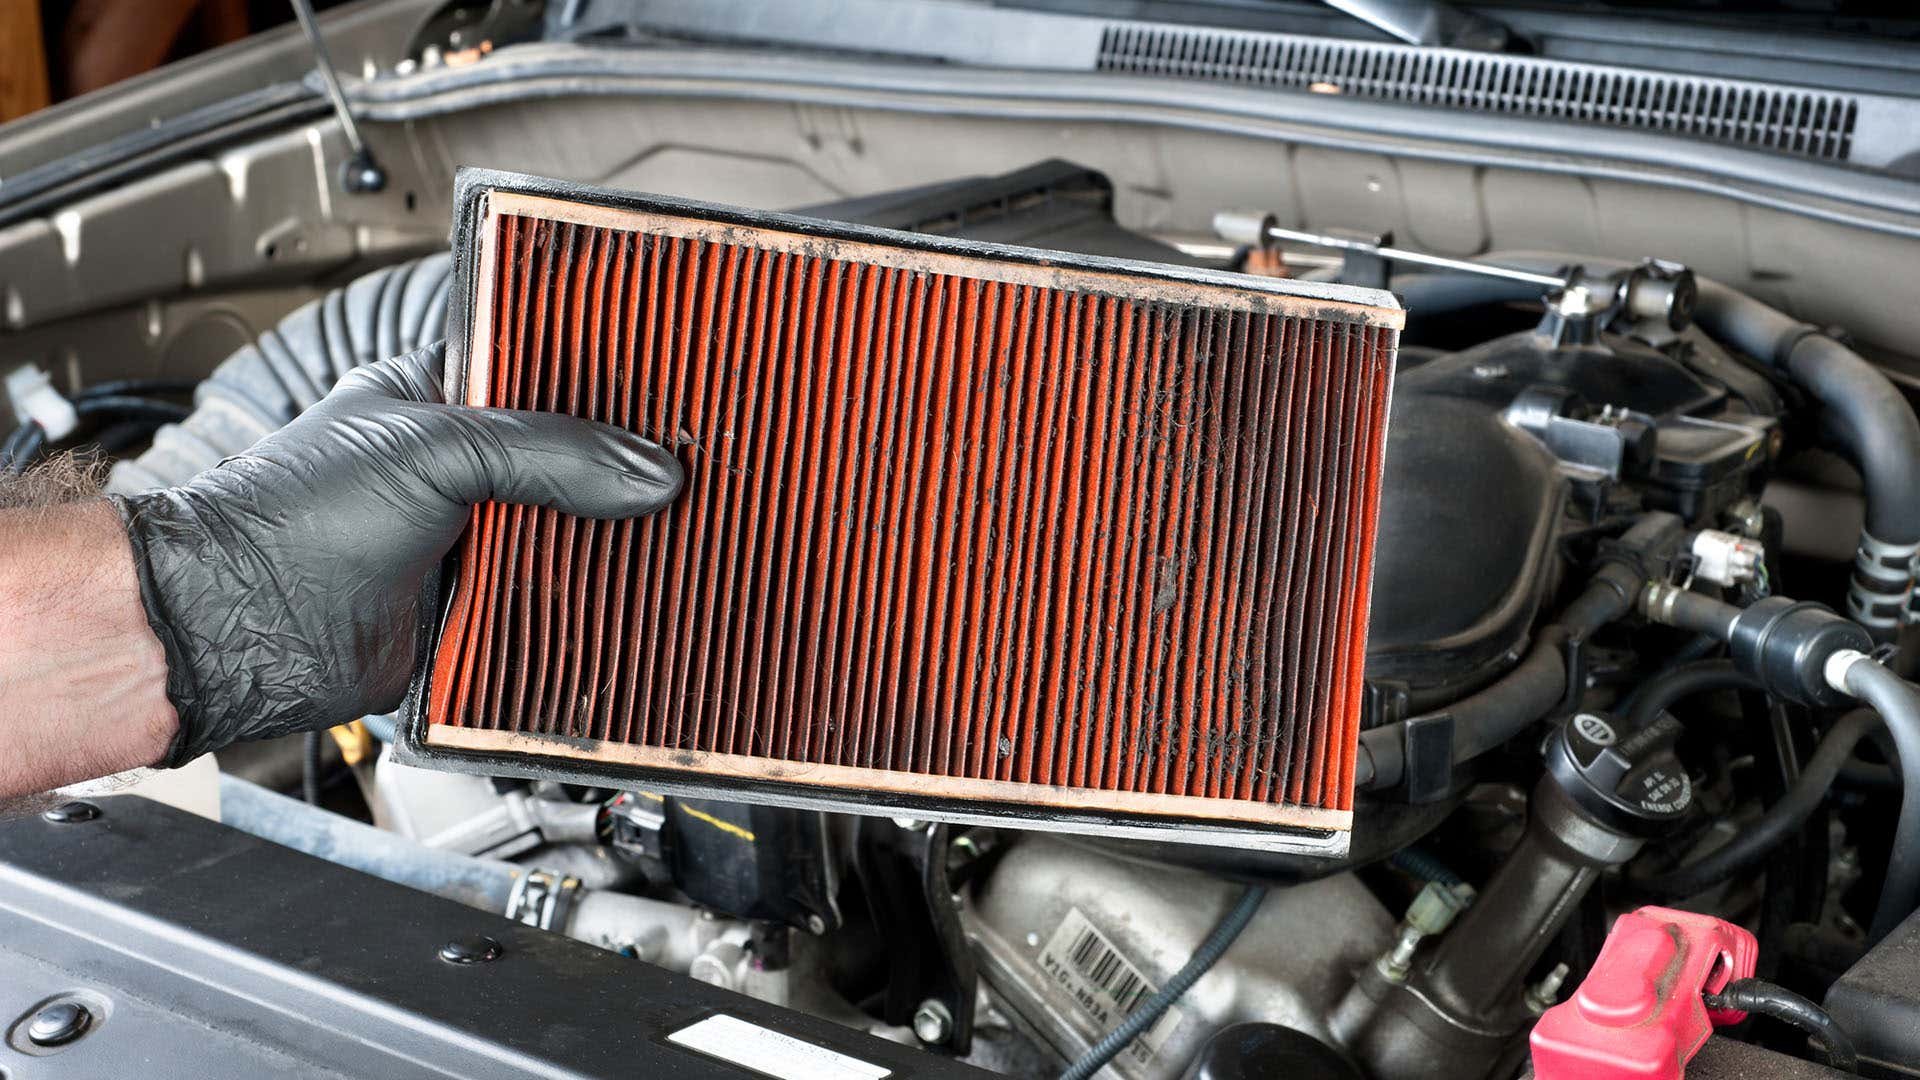 Always inspect the air filter inside and outside of your vehicle.